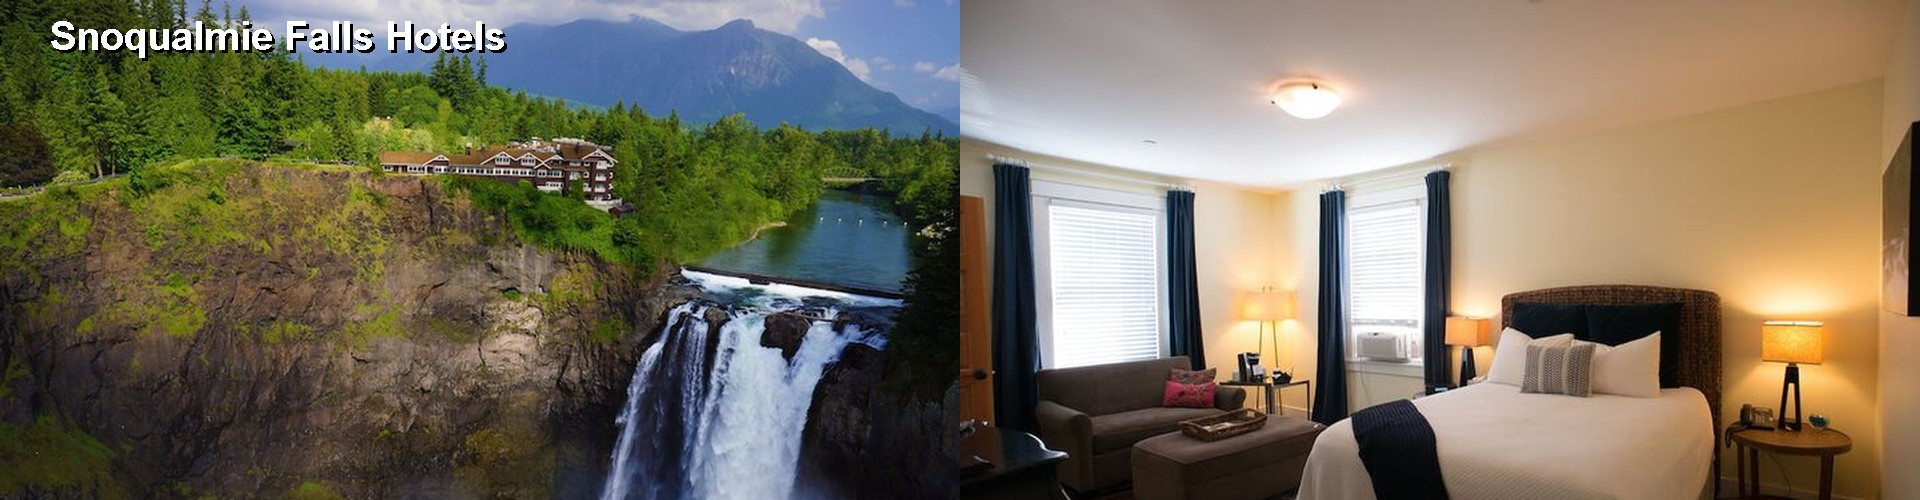 5 Best Hotels Near Snoqualmie Falls